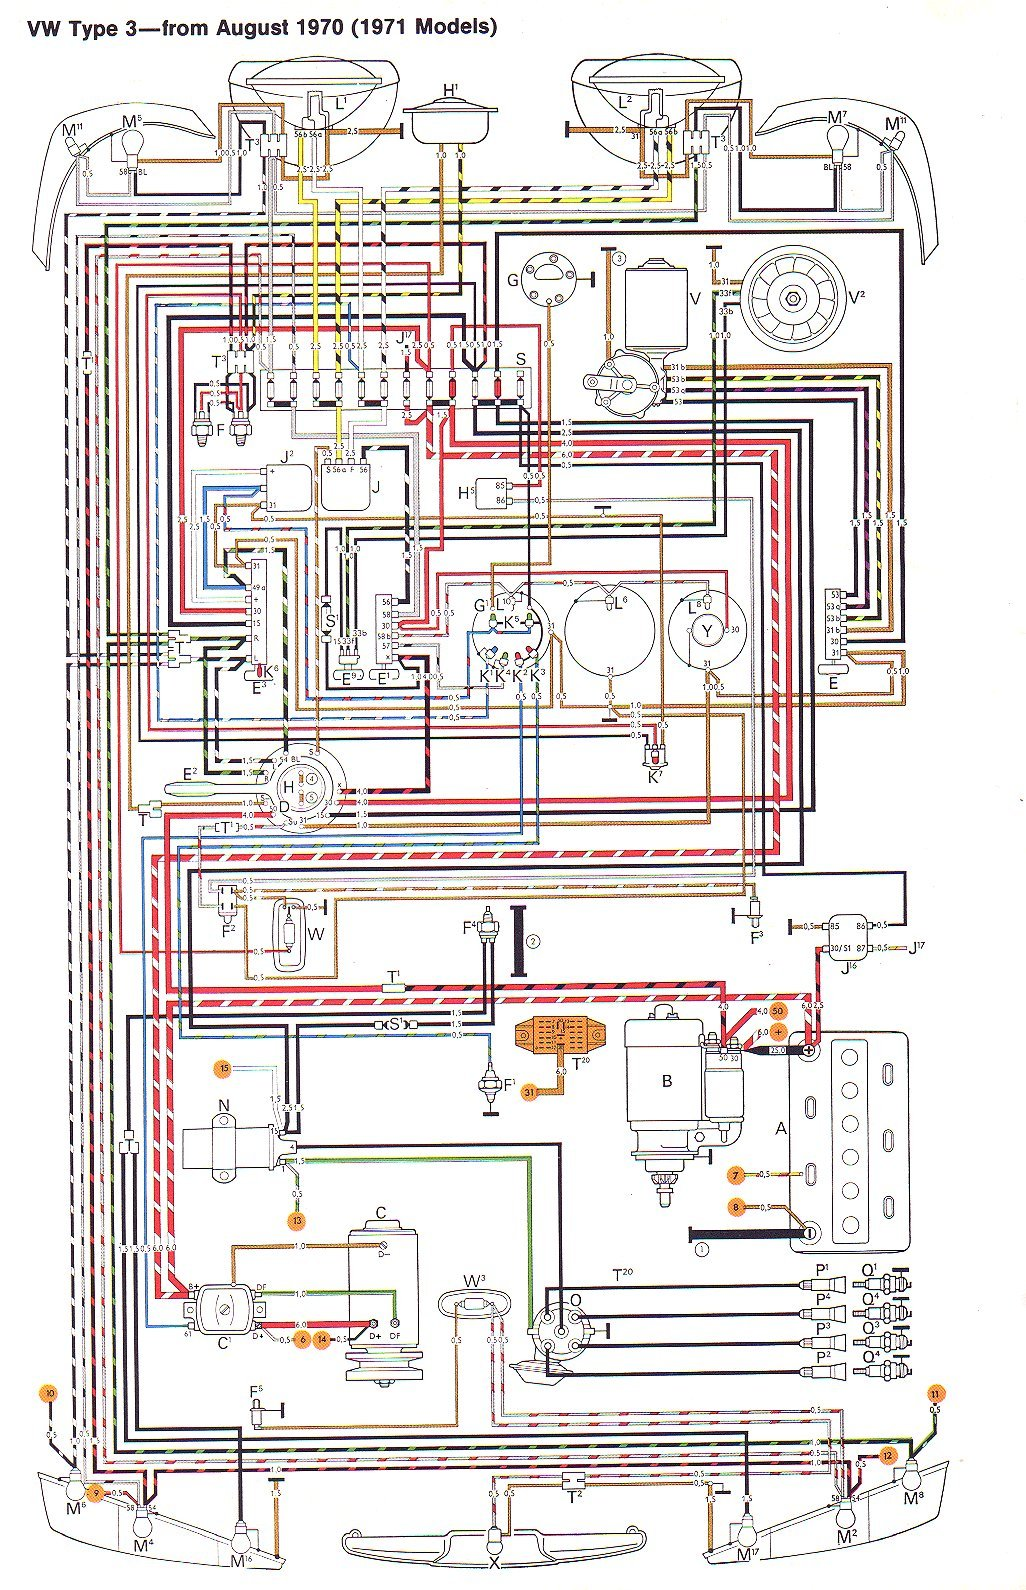 77 Vw Van Wiring Diagram The Portal And Forum Of 1968 Mustang For Light Todays Rh 9 10 7 1813weddingbarn Com 1977 Bus Switch